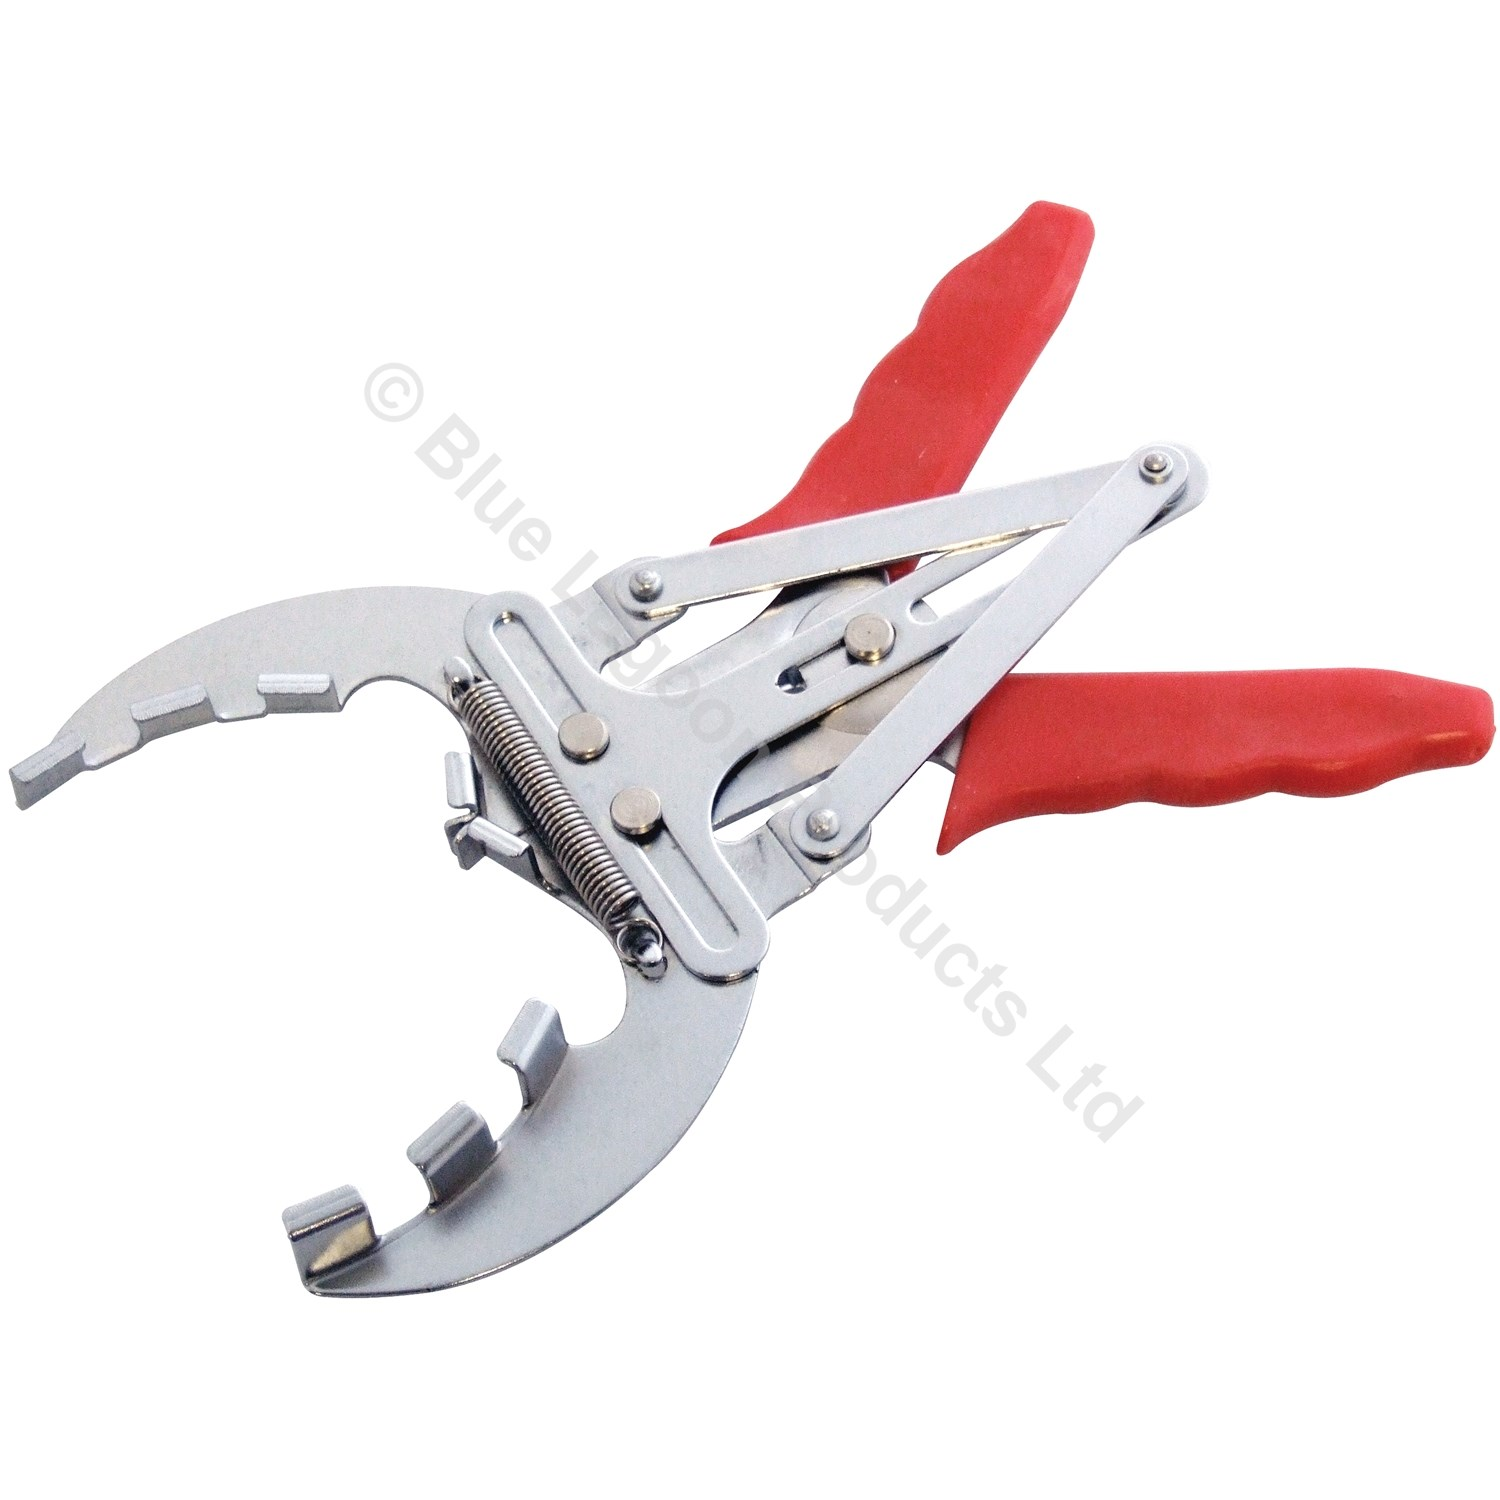 PISTON RING PLIERS 50MM 100MM CAR AUTO VAN EXPANDER REMOVER REMOVAL GRIP TOOL